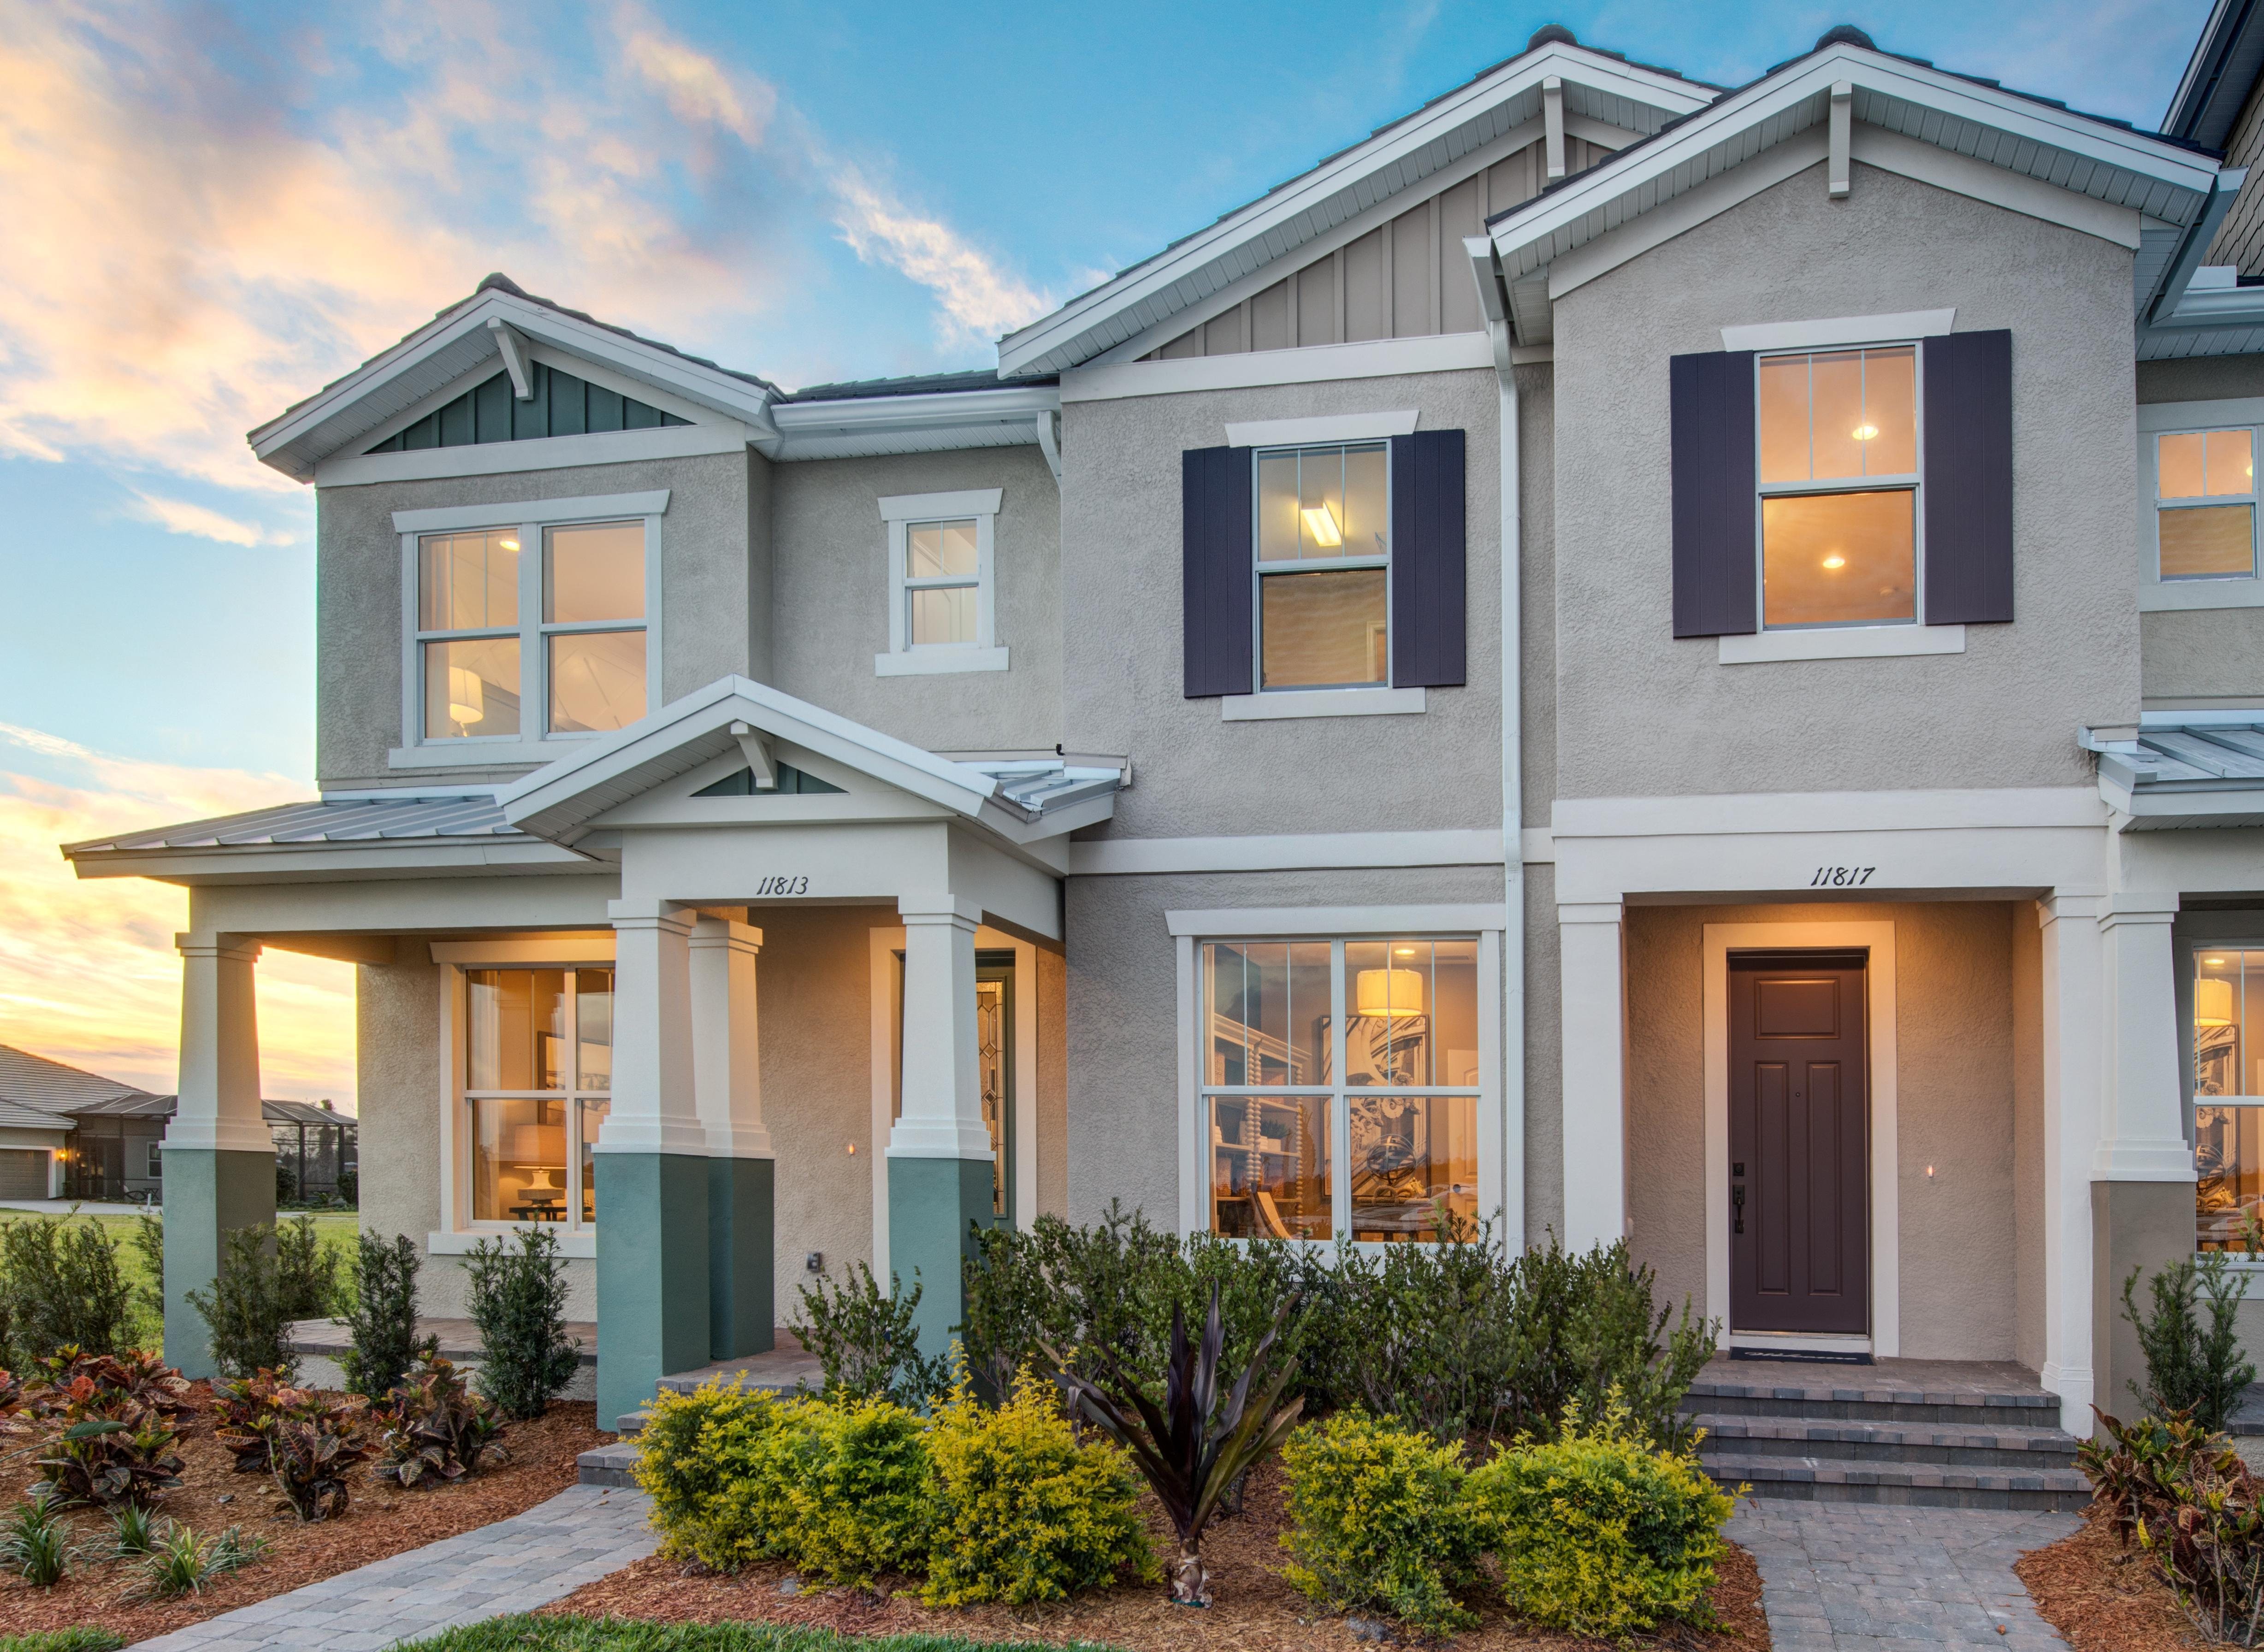 Mallory Park by Pulte/Divosta, at Lakewood Ranch, Florida